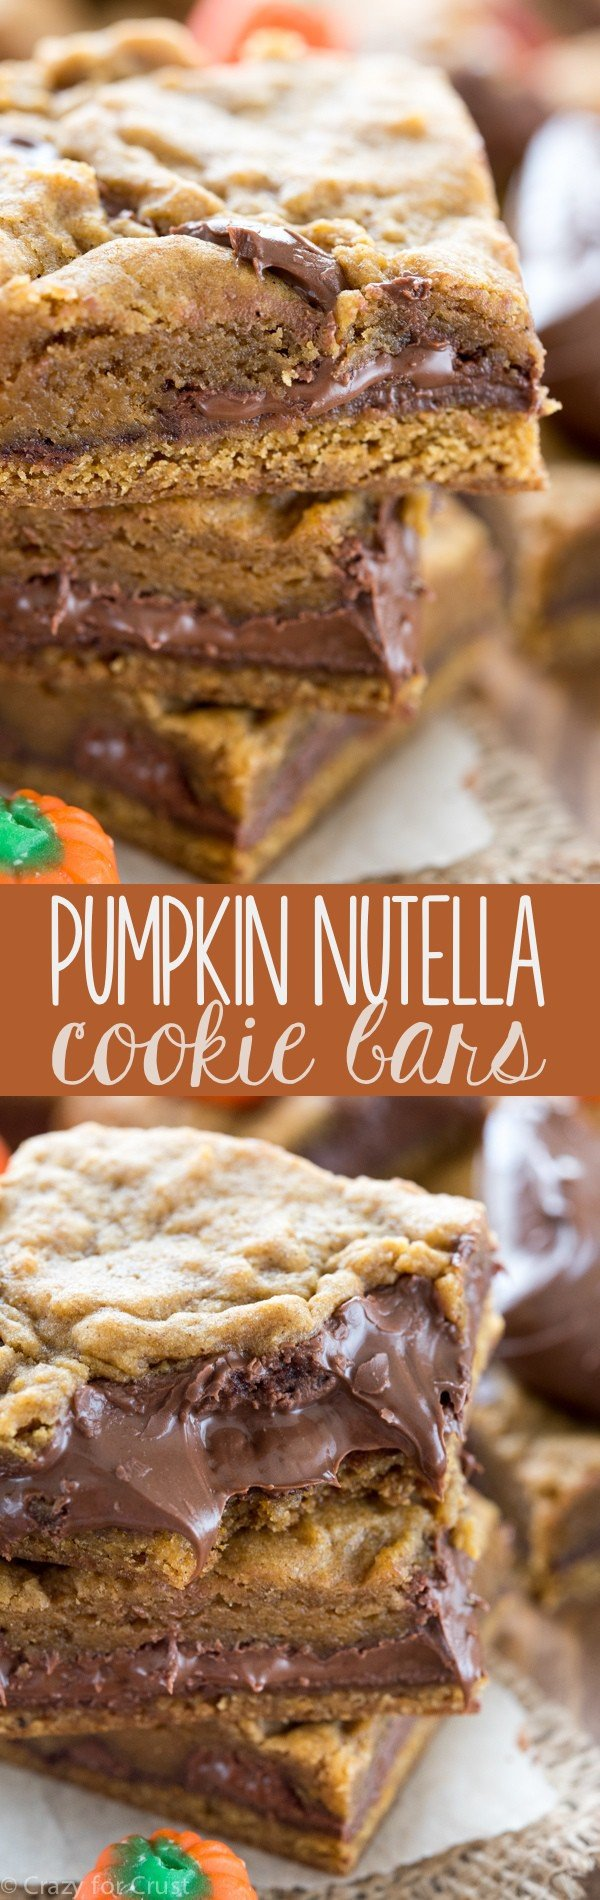 These Pumpkin Nutella Cookie Bars are the best pumpkin recipe ever! Rich pumpkin cookie bars filled with gooey Nutella - such an easy recipe the whole family will LOVE!